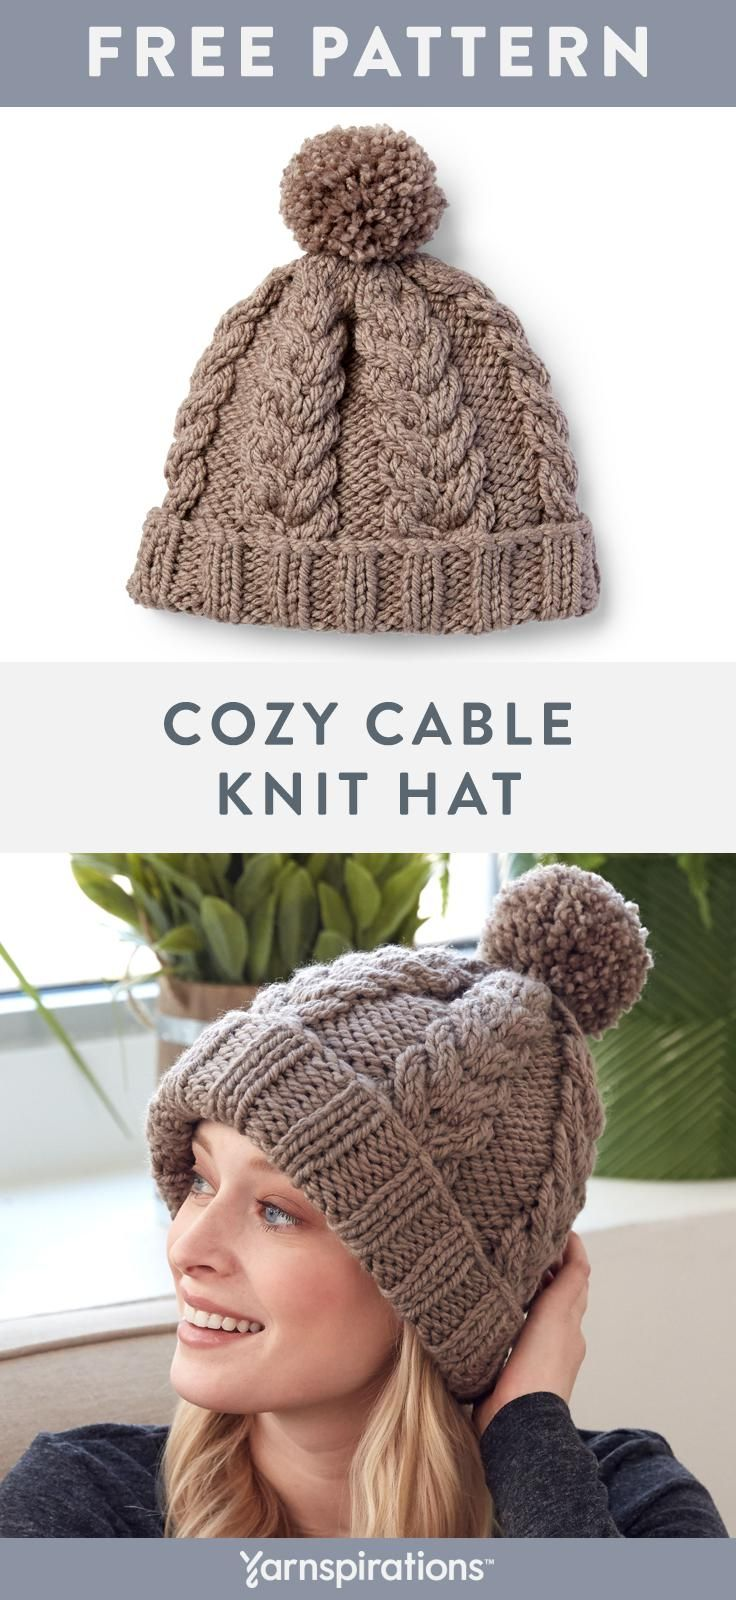 This cozy cable knit hat pattern works up fast with super